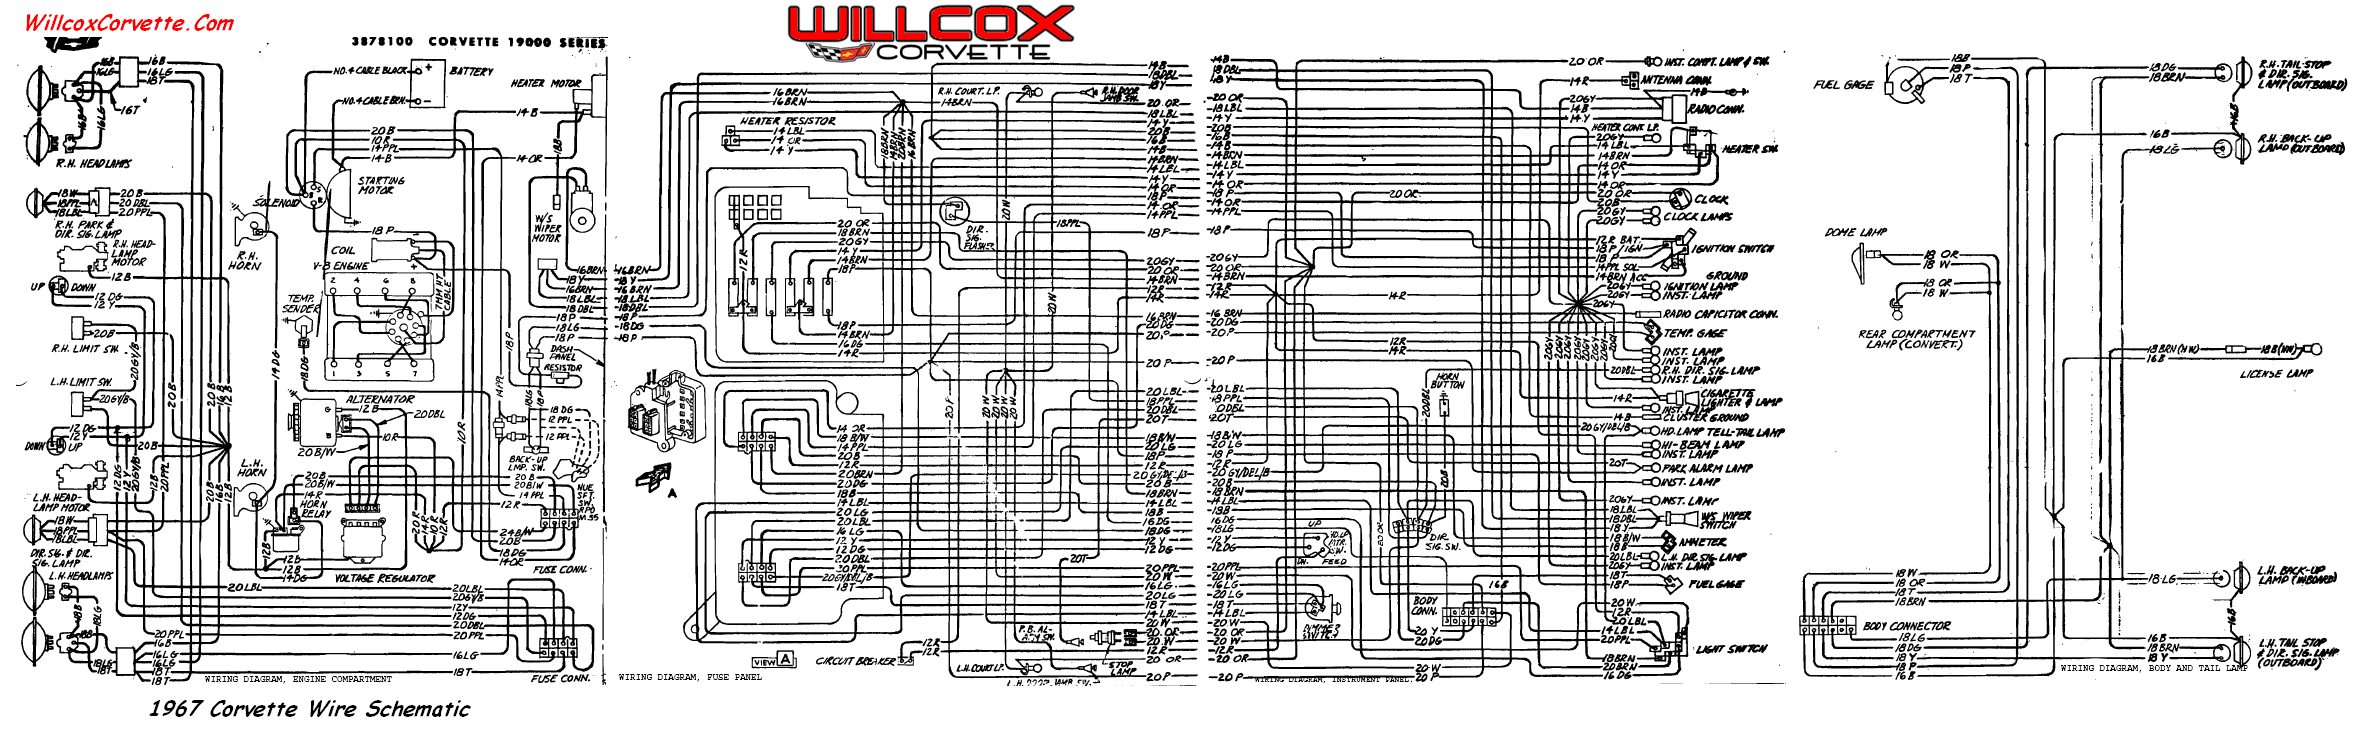 1988 Corvette Ac Wiring Diagram Will Be A Thing 1995 Monte Carlo 1967 Tracer Schematic Willcox 1987 Engine Electrical Diagrams